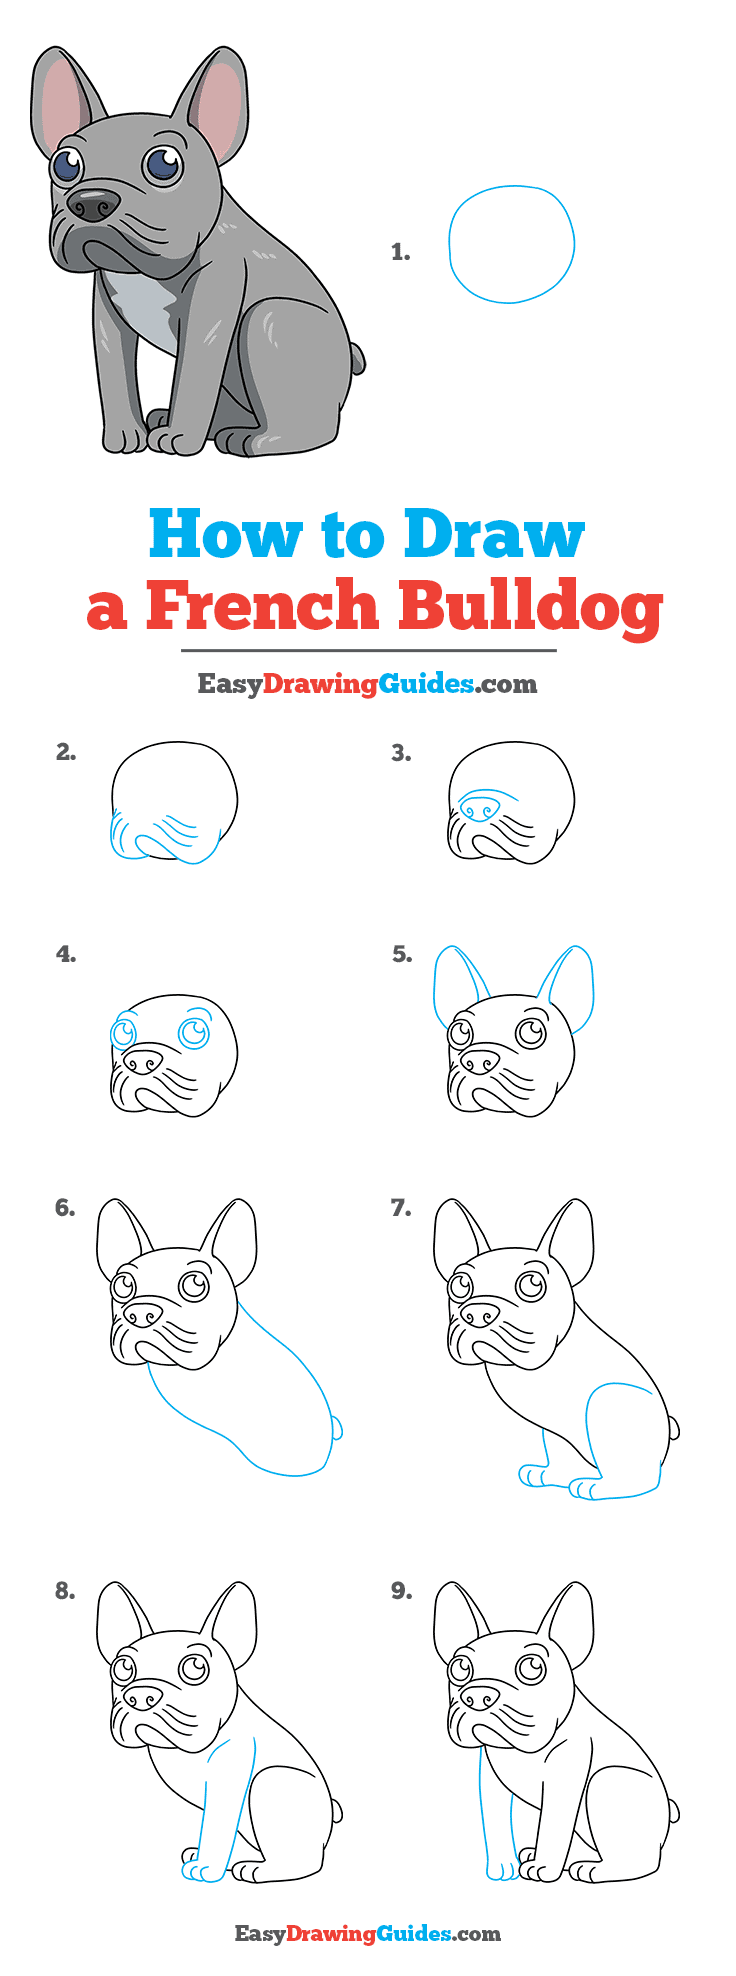 How to Draw a French Dog Step by Step Tutorial Image